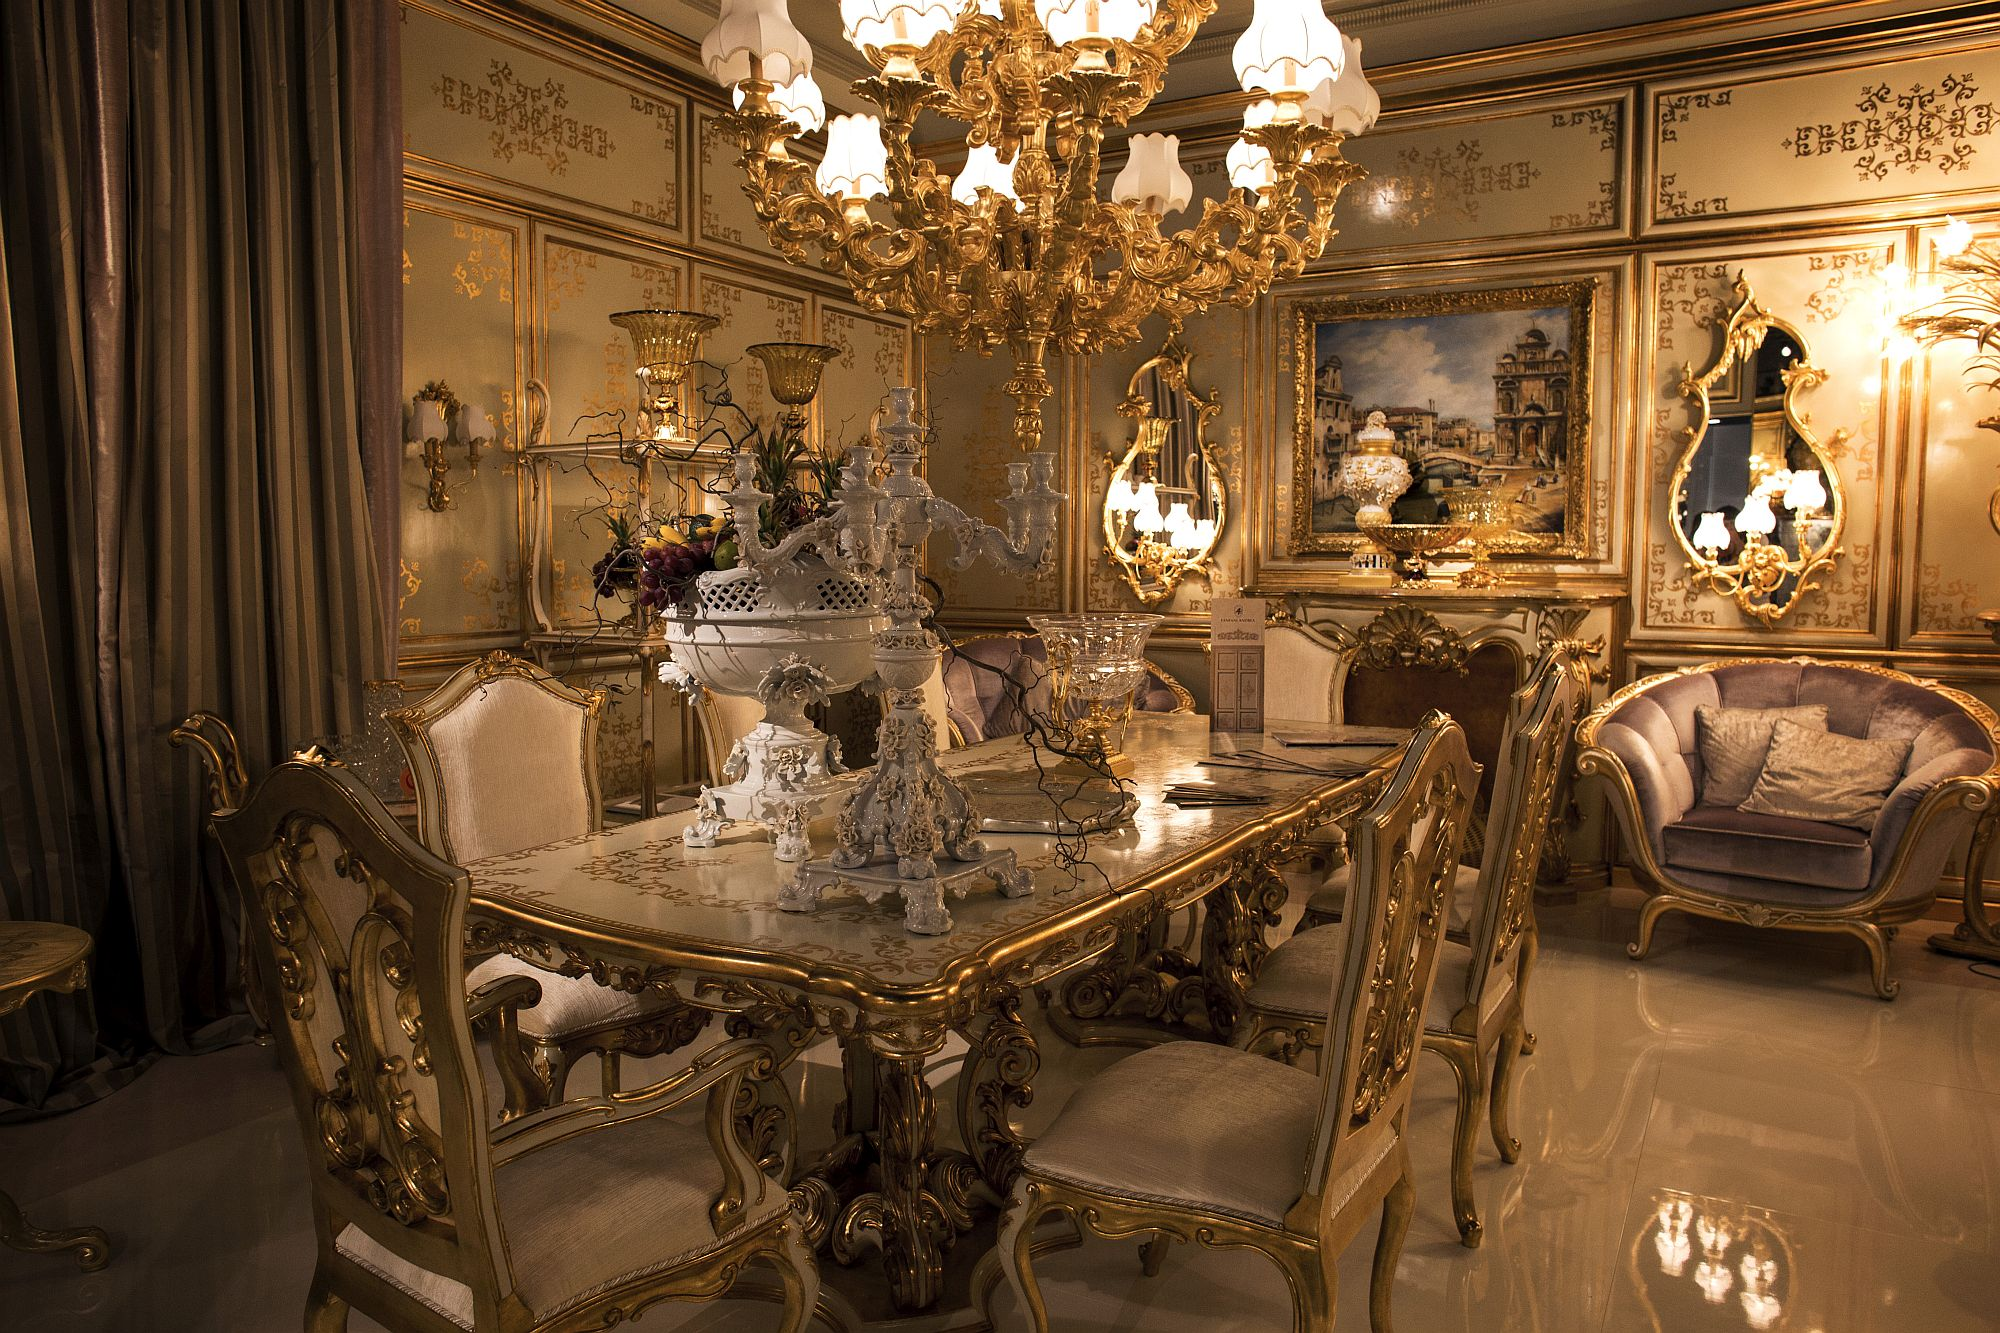 This stunning dining room is all about gold A royal dining experience Luxury all the Way: 15 Awesome Dining Rooms Fit for Royalty!